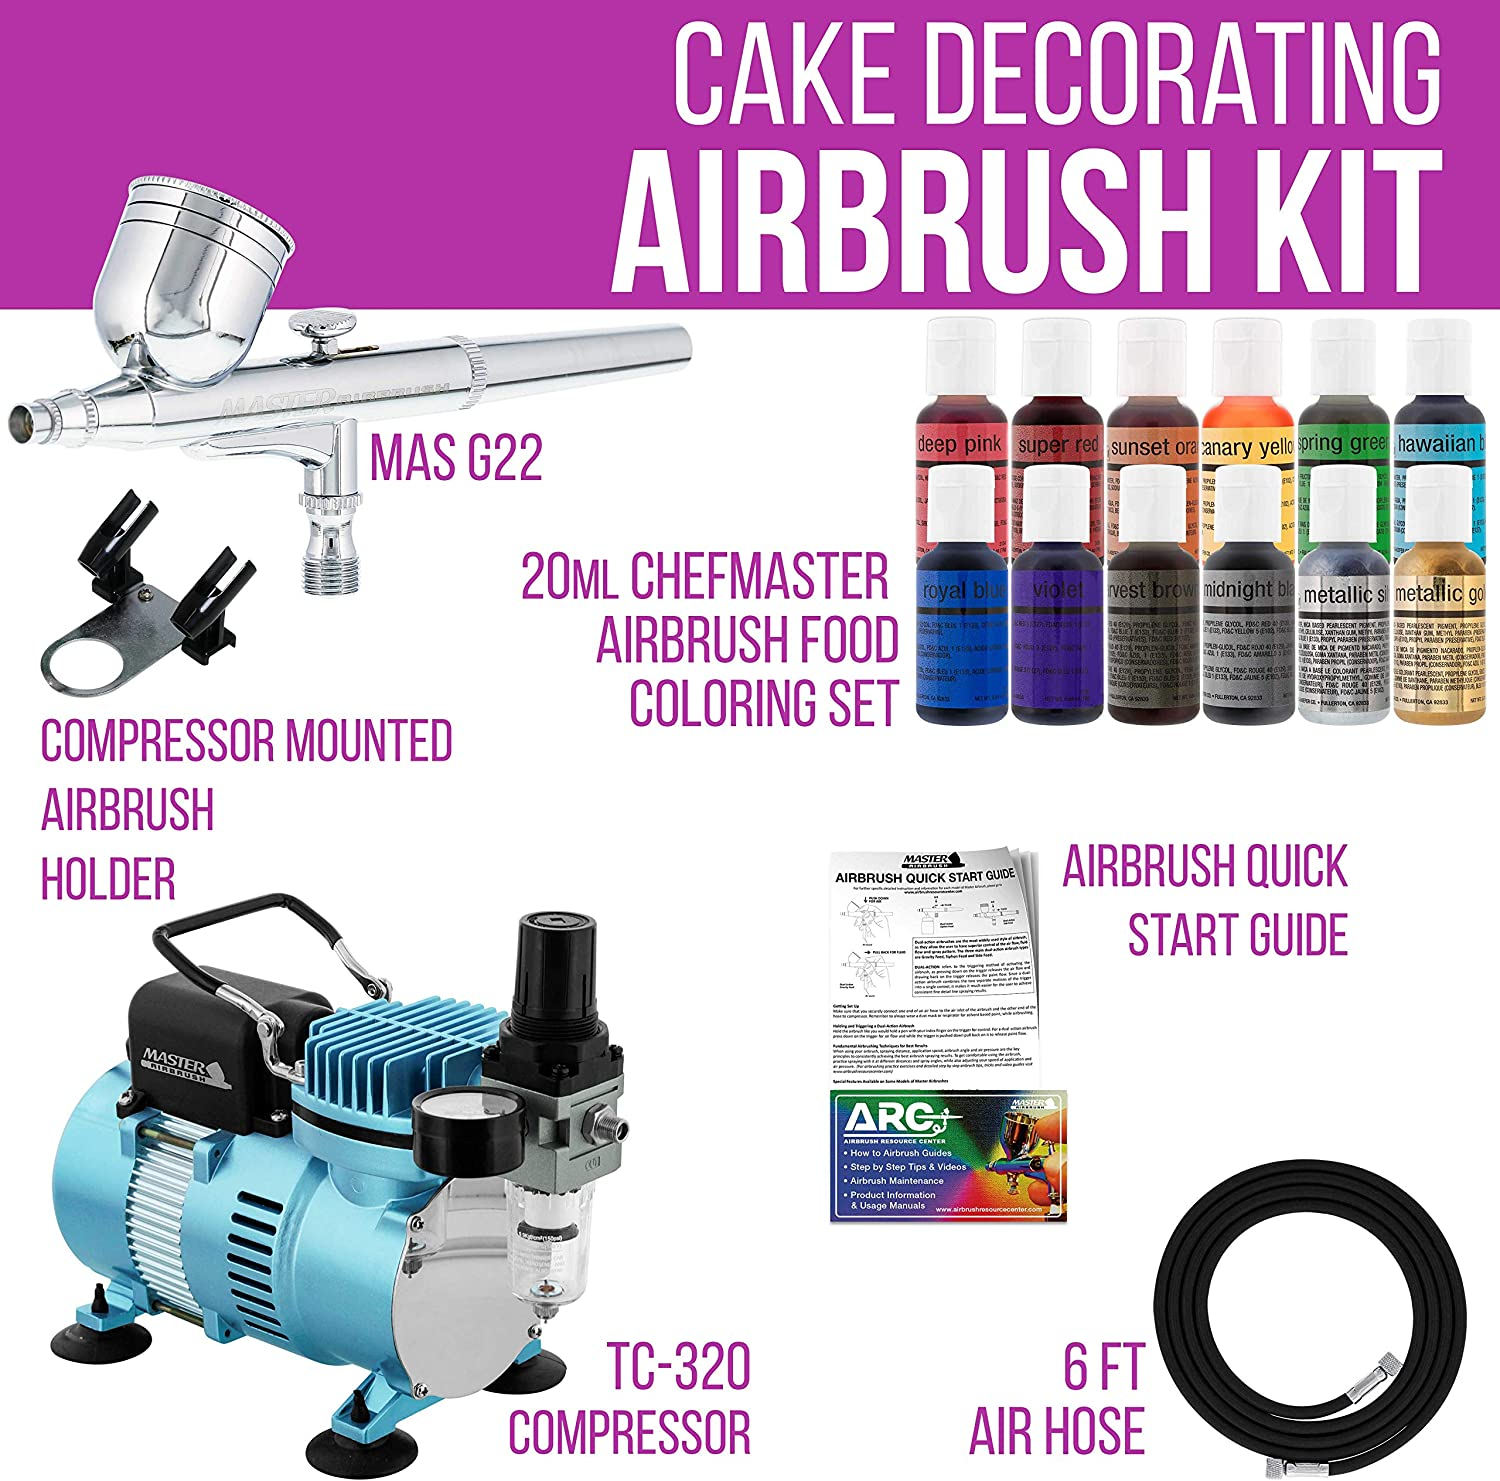 Master Airbrush Cake Decorating Airbrushing System Kit with a Gravity Feed  Airbrush, Set of 12 Chefmaster Food Colors, Pro Cool Runner II Dual Fan Air  ...